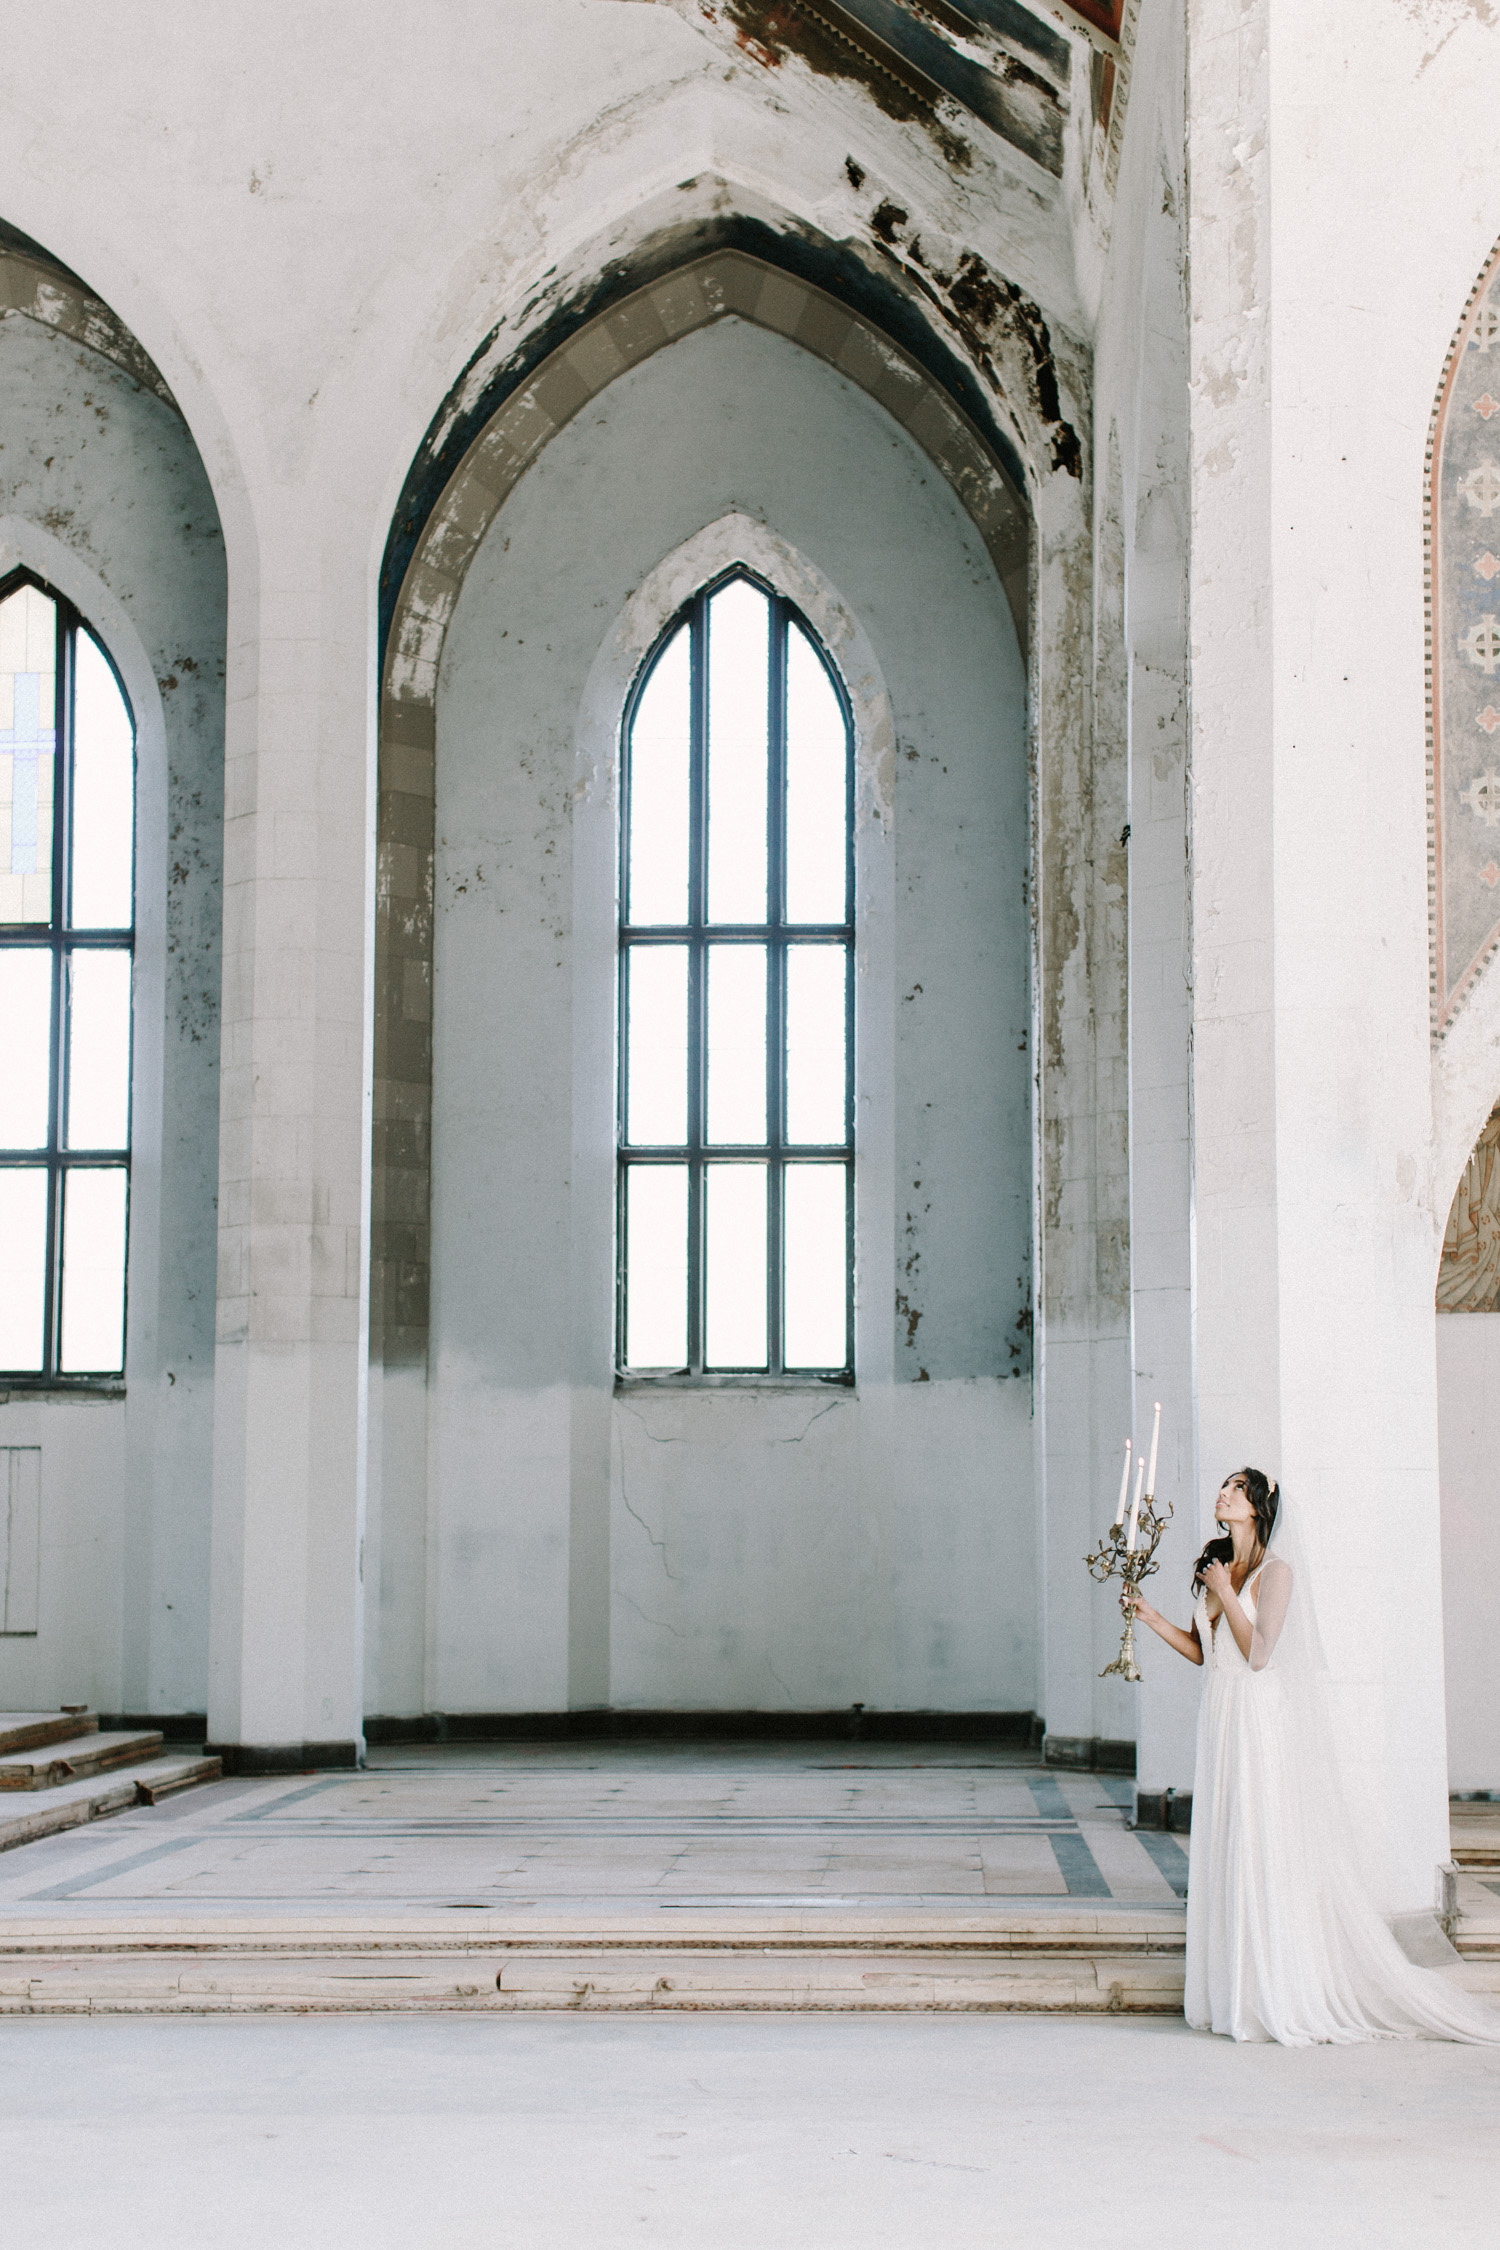 A bride holding a gold candelabra looks up in the abandoned cathedral location of her destination wedding